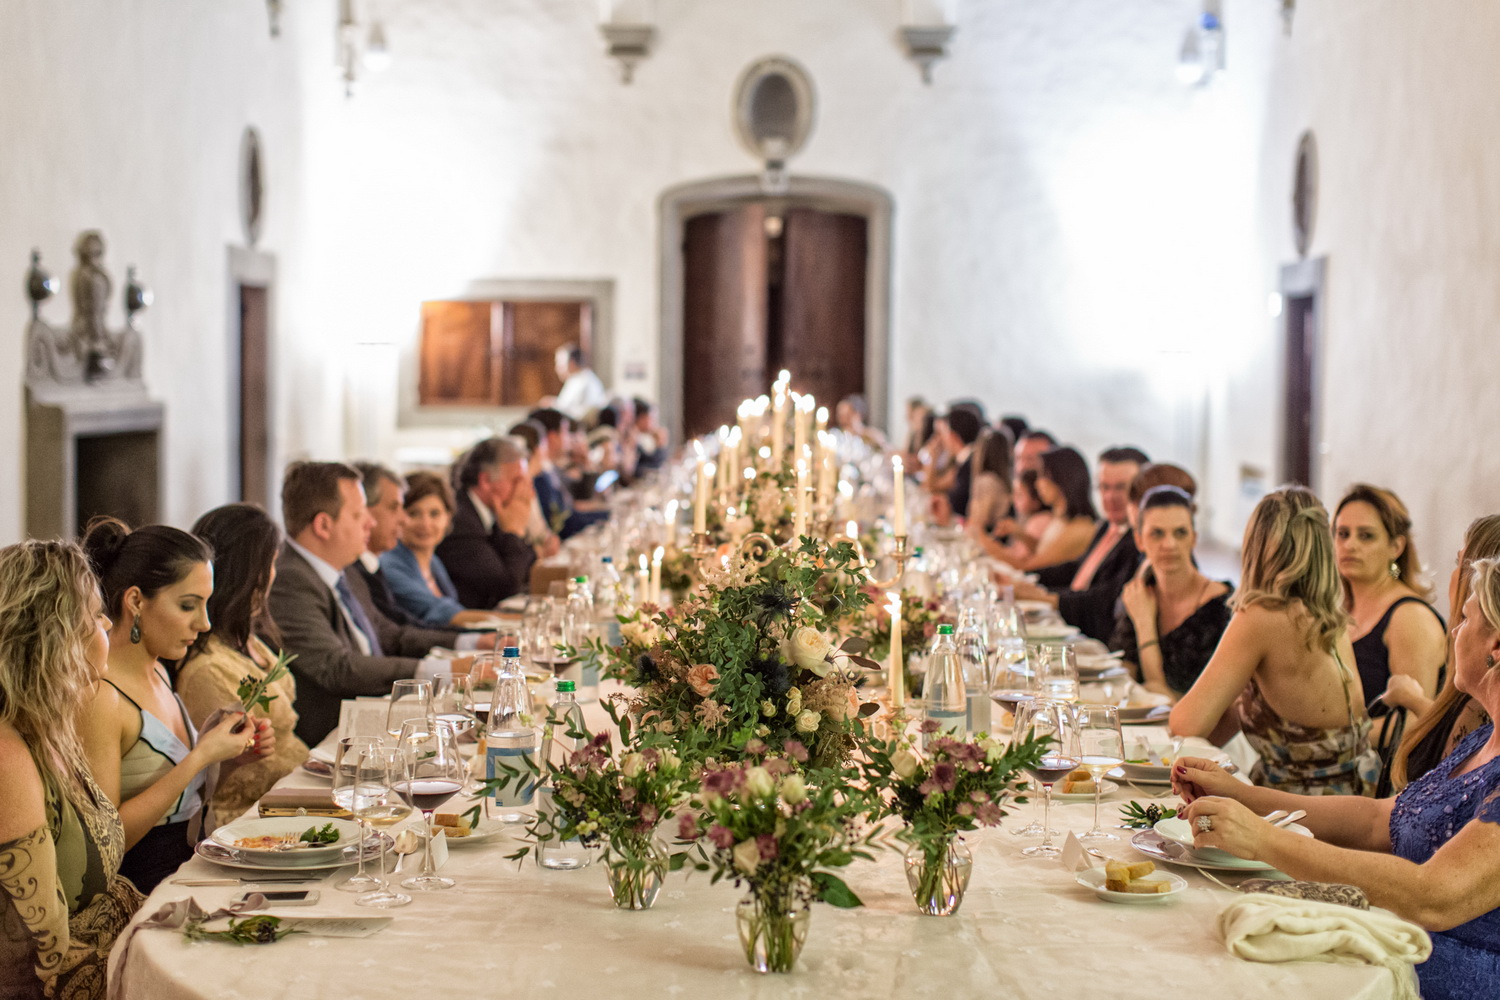 Destination Wedding Toscana | Caroline e Fernando destination wedding na toscana | caroline e fernando Destination Wedding na Toscana | Caroline e Fernando marco zammarchi destination wedding 59